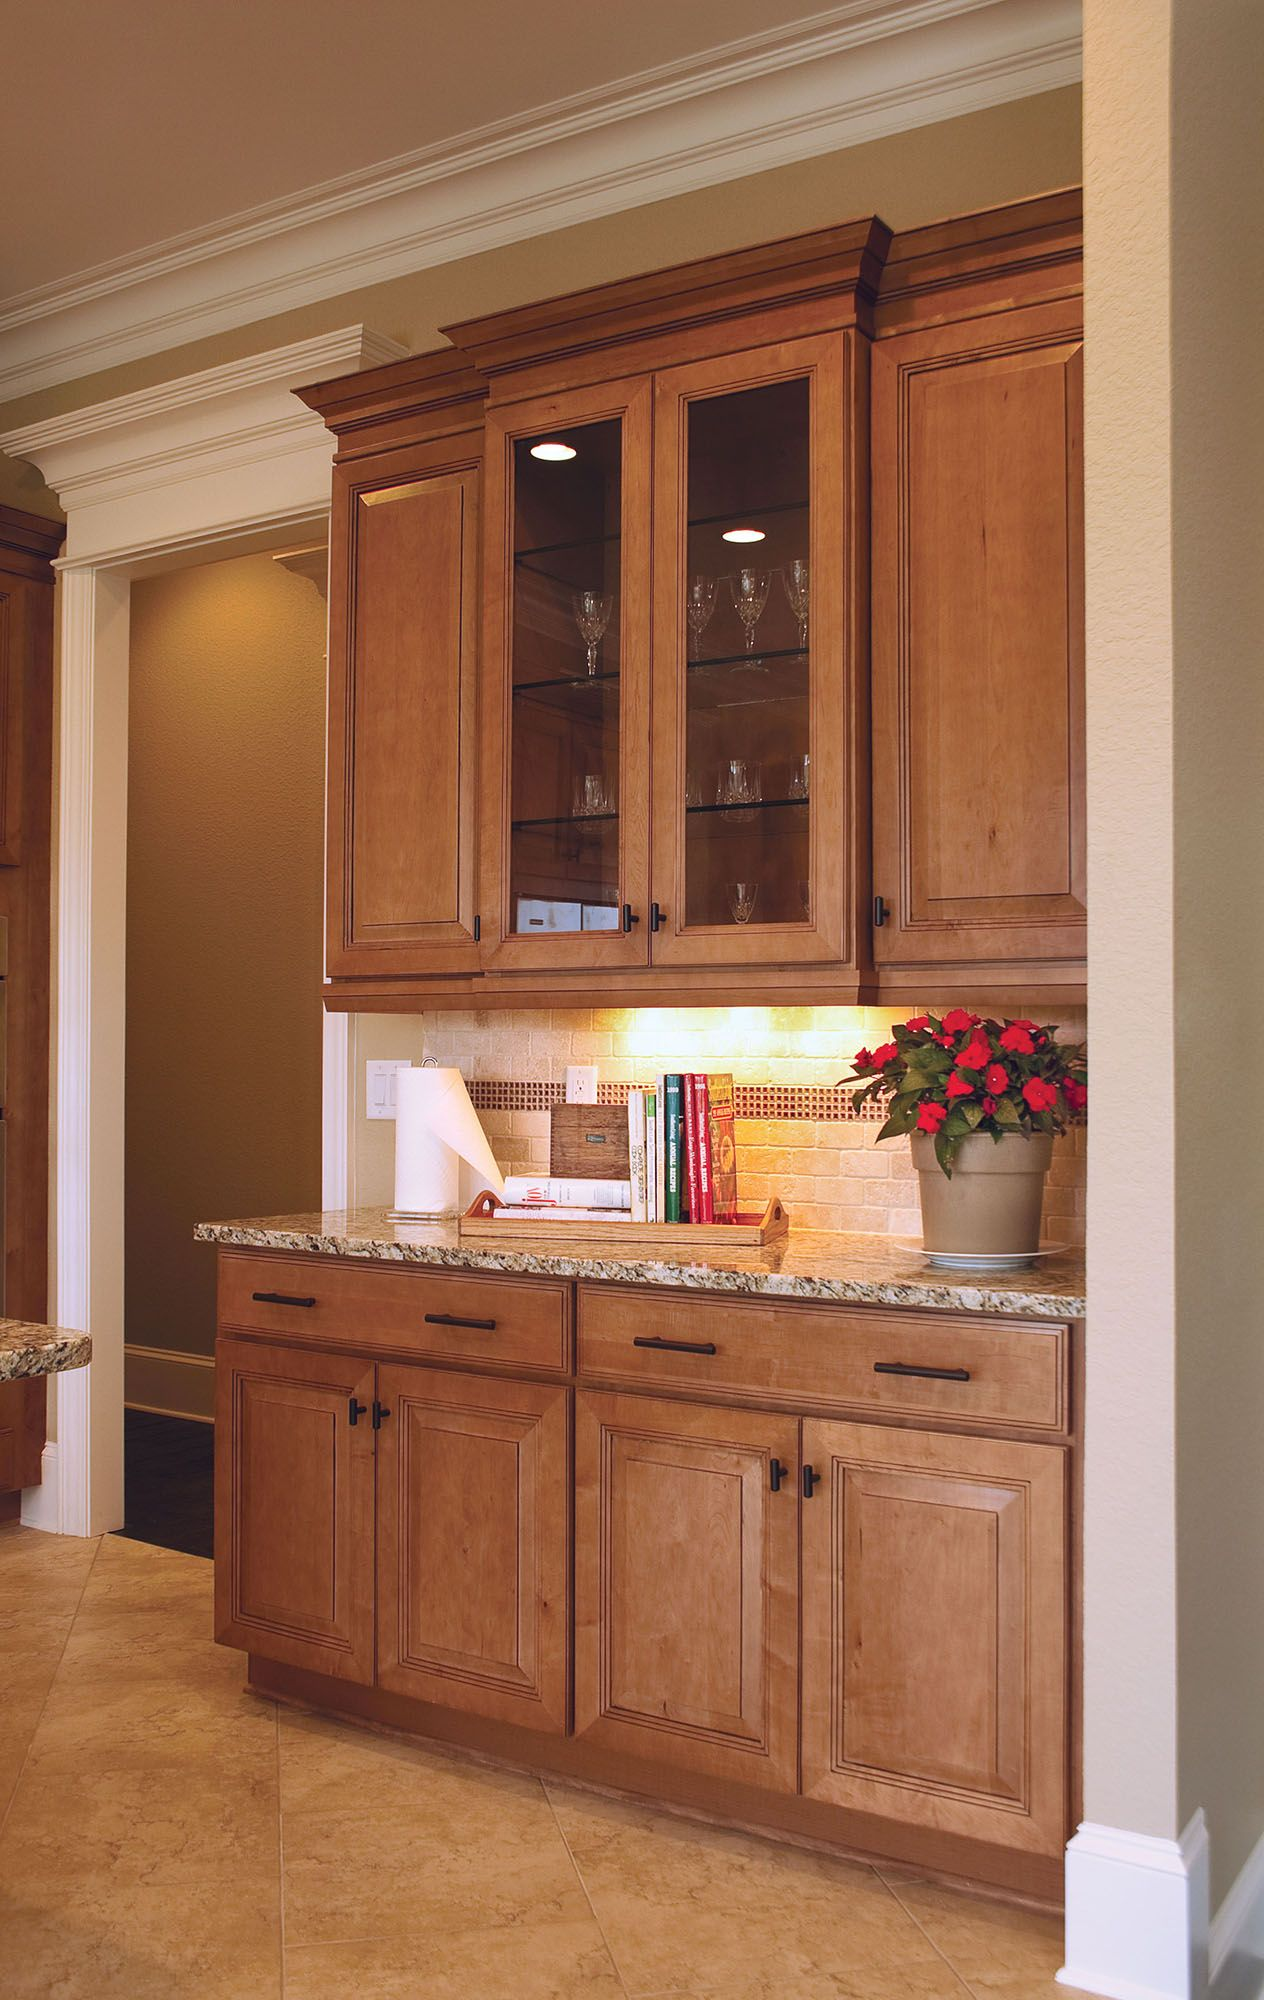 Photo gallery of remodeled kitchen features CliqStudios Carlton Maple Caramel Jute Glaze glass